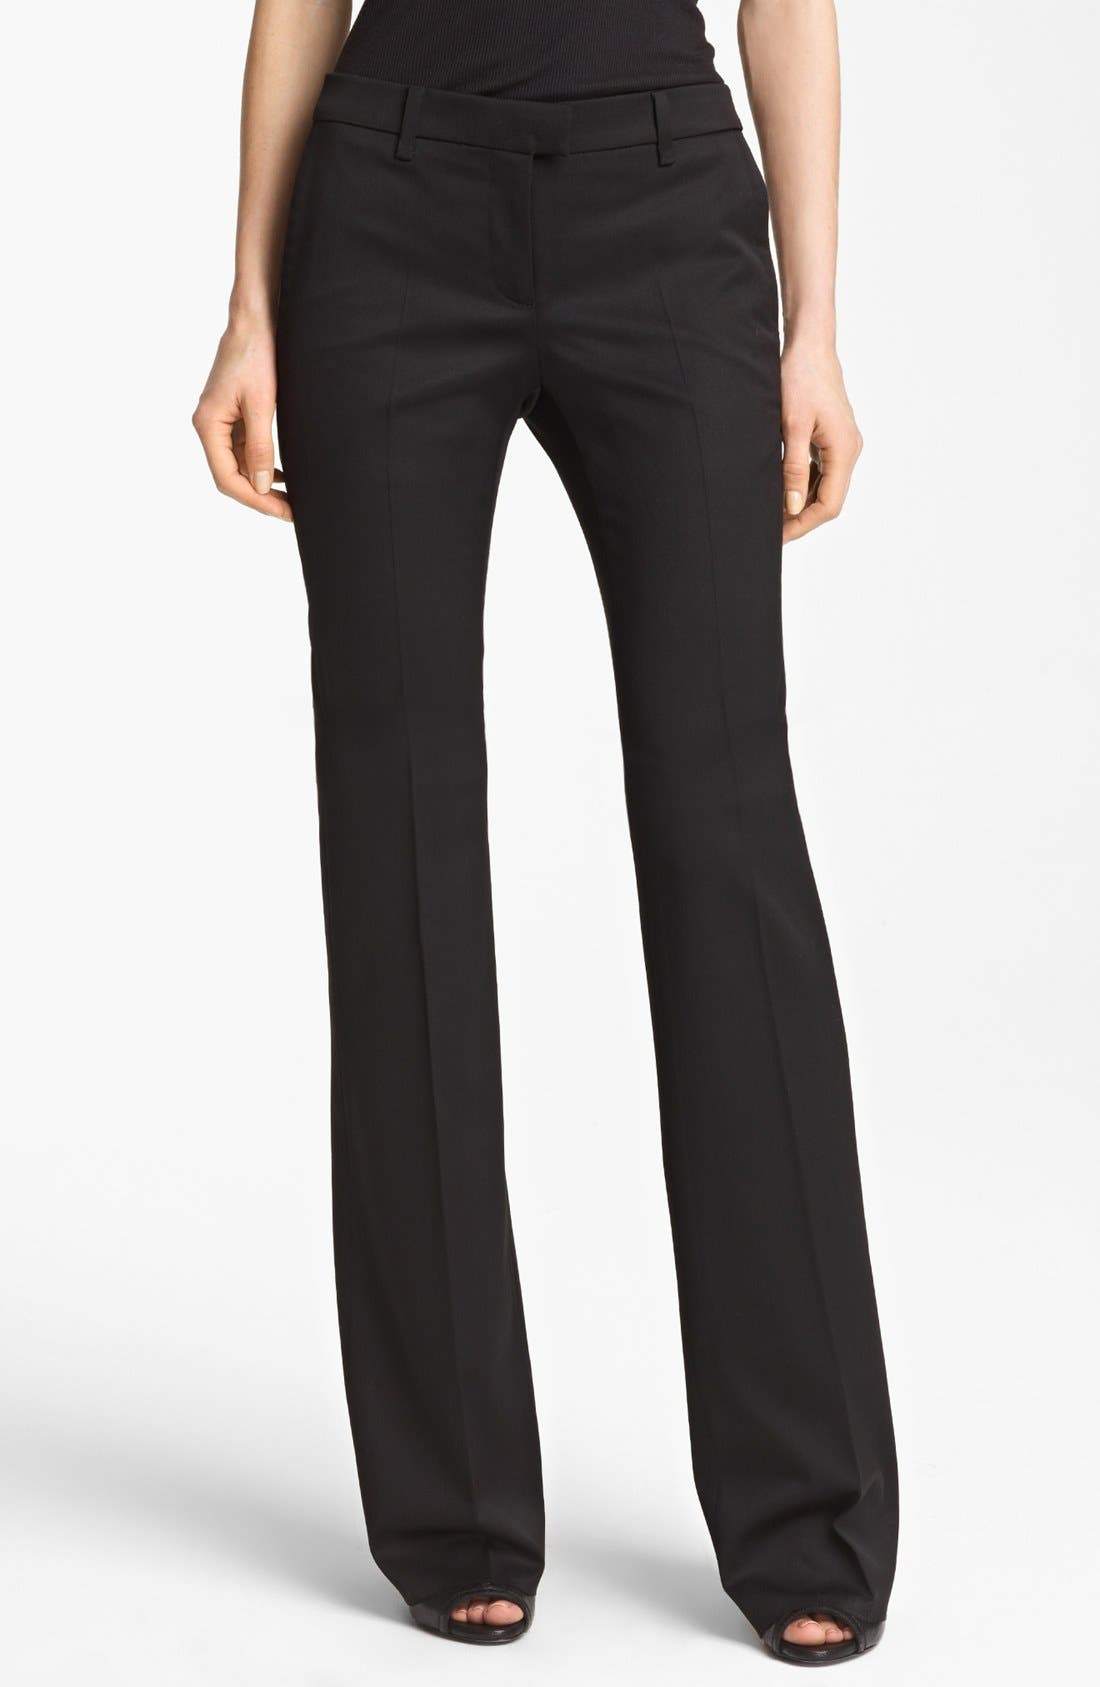 Alternate Image 1 Selected - Burberry Prorsum Tailored Stretch Wool Pants